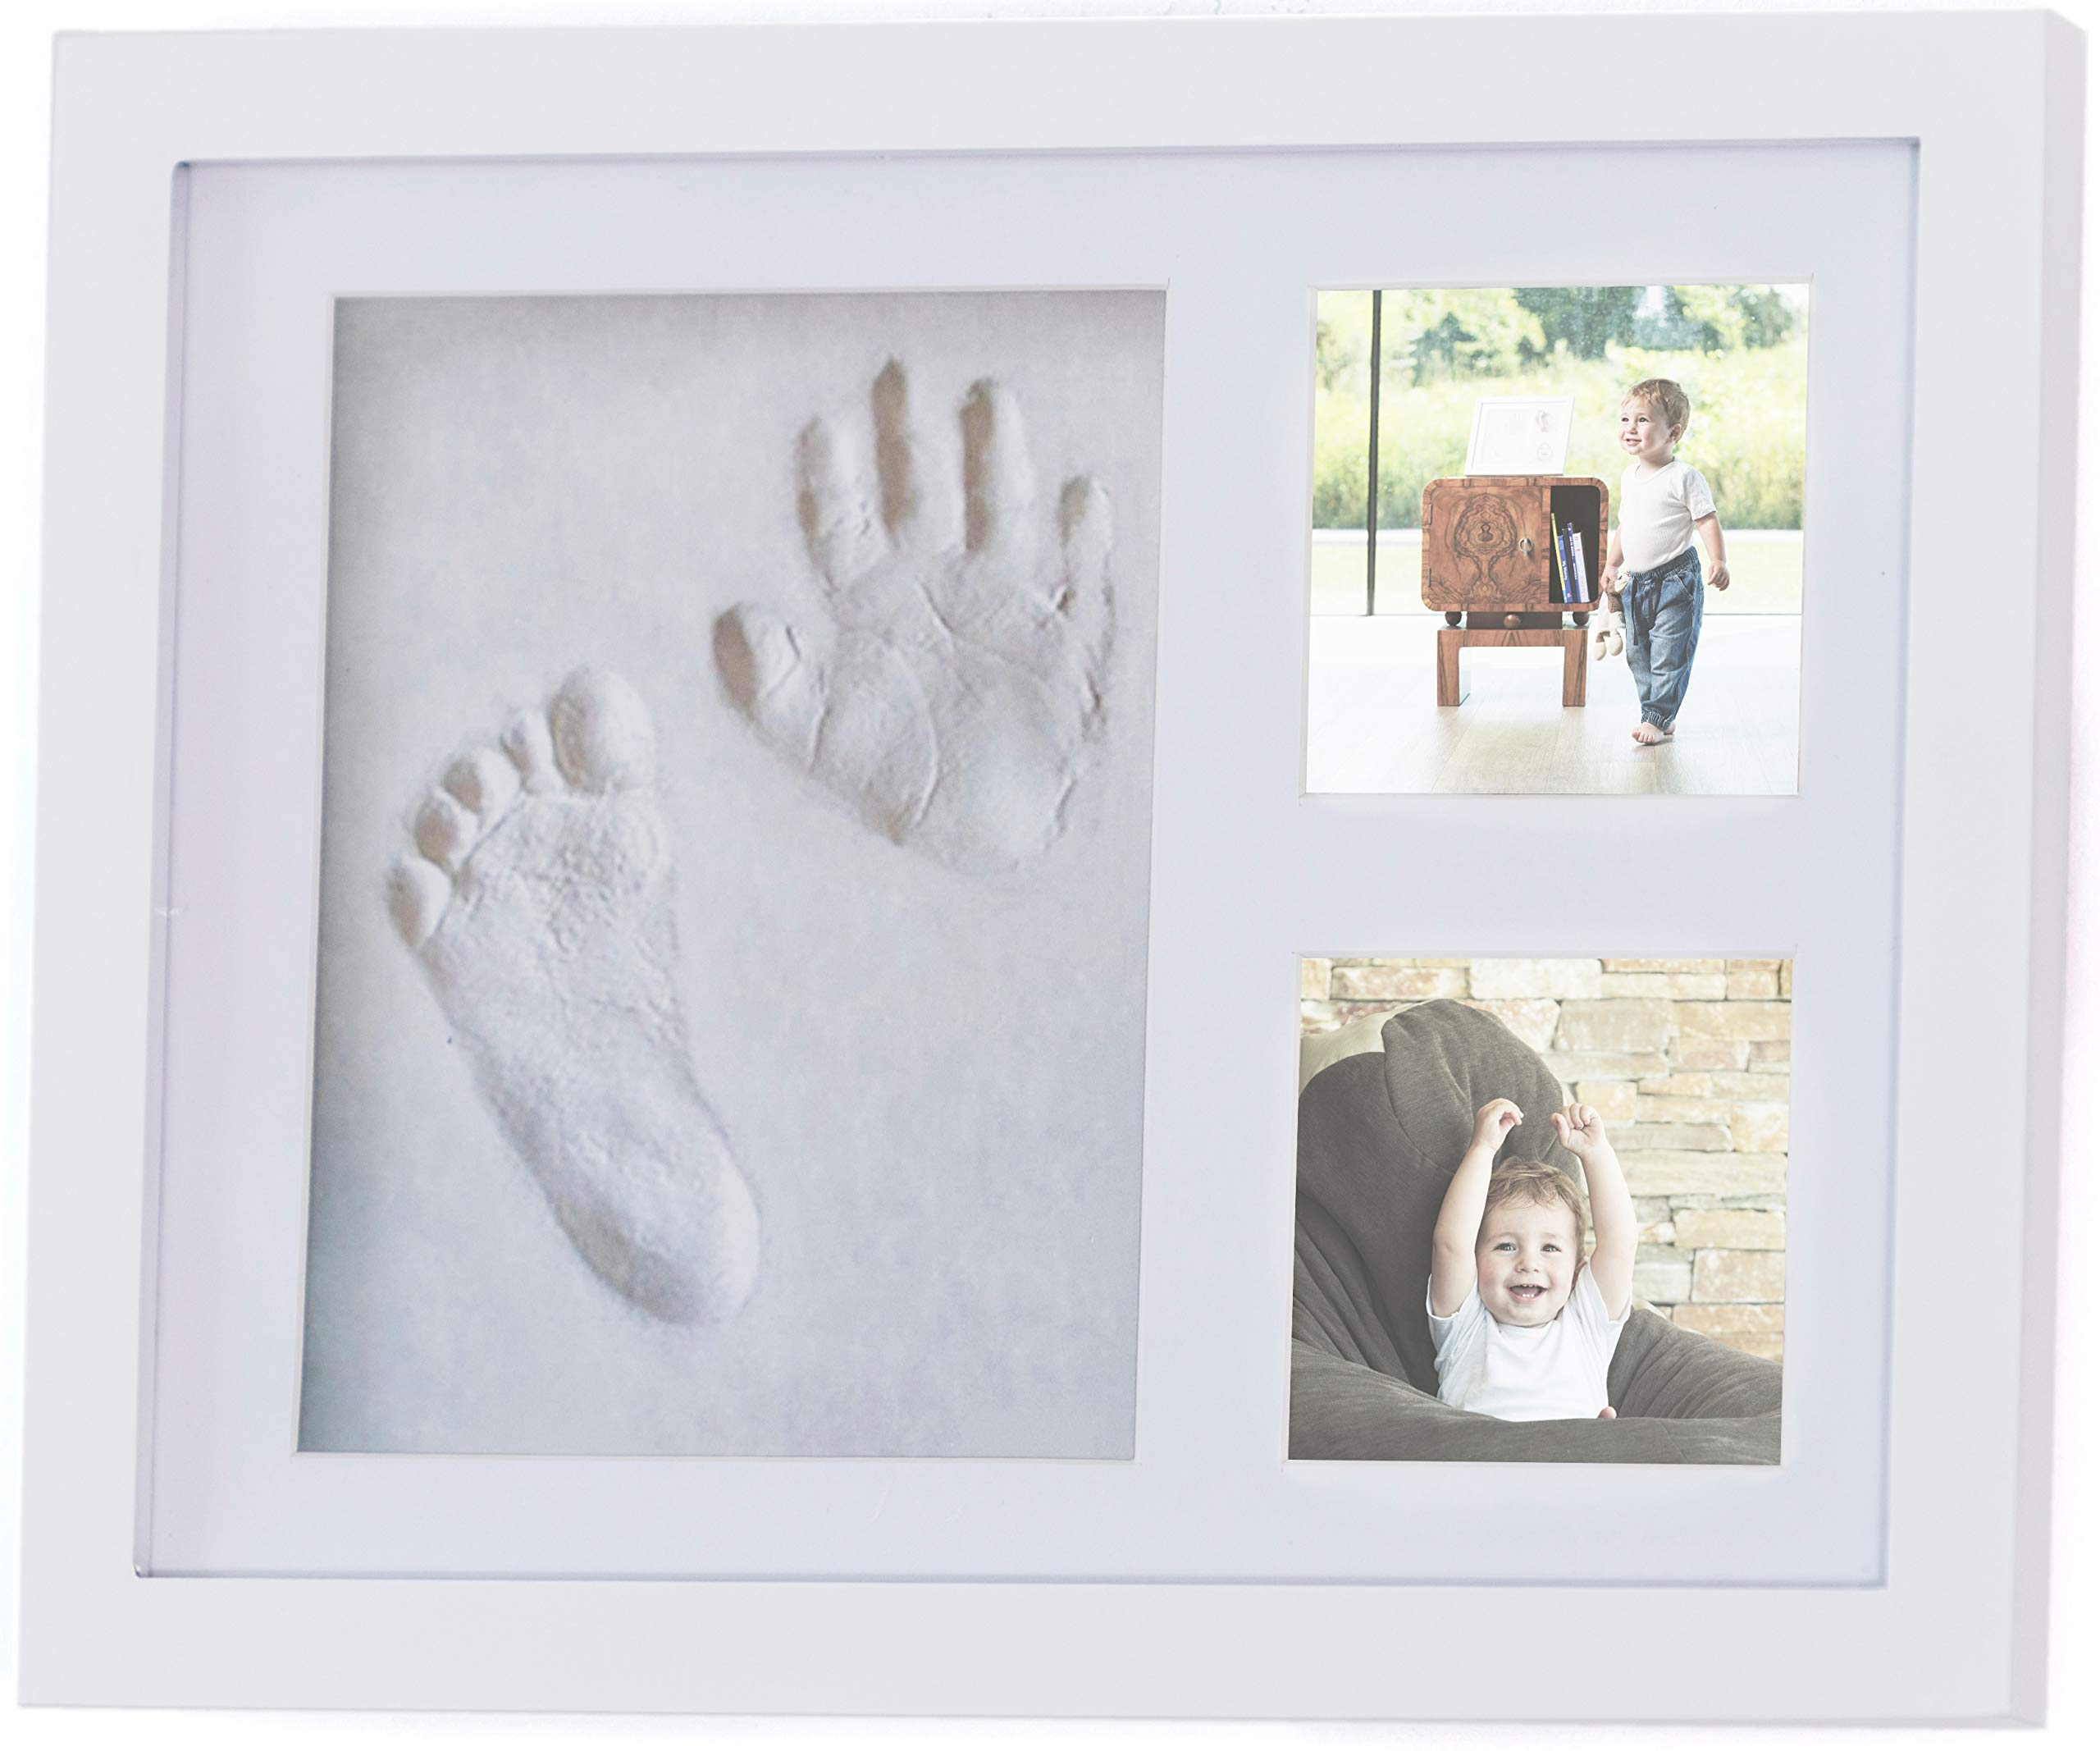 Baby/Newborn Handprint & Footprint foto Frame kit for The Keepsake with Accessories & Gift Box by 4Baby Stars -Awesome Boy & Girl Baby Shower Gift for Registry -Baby Room Decor -Unique Baby Memory